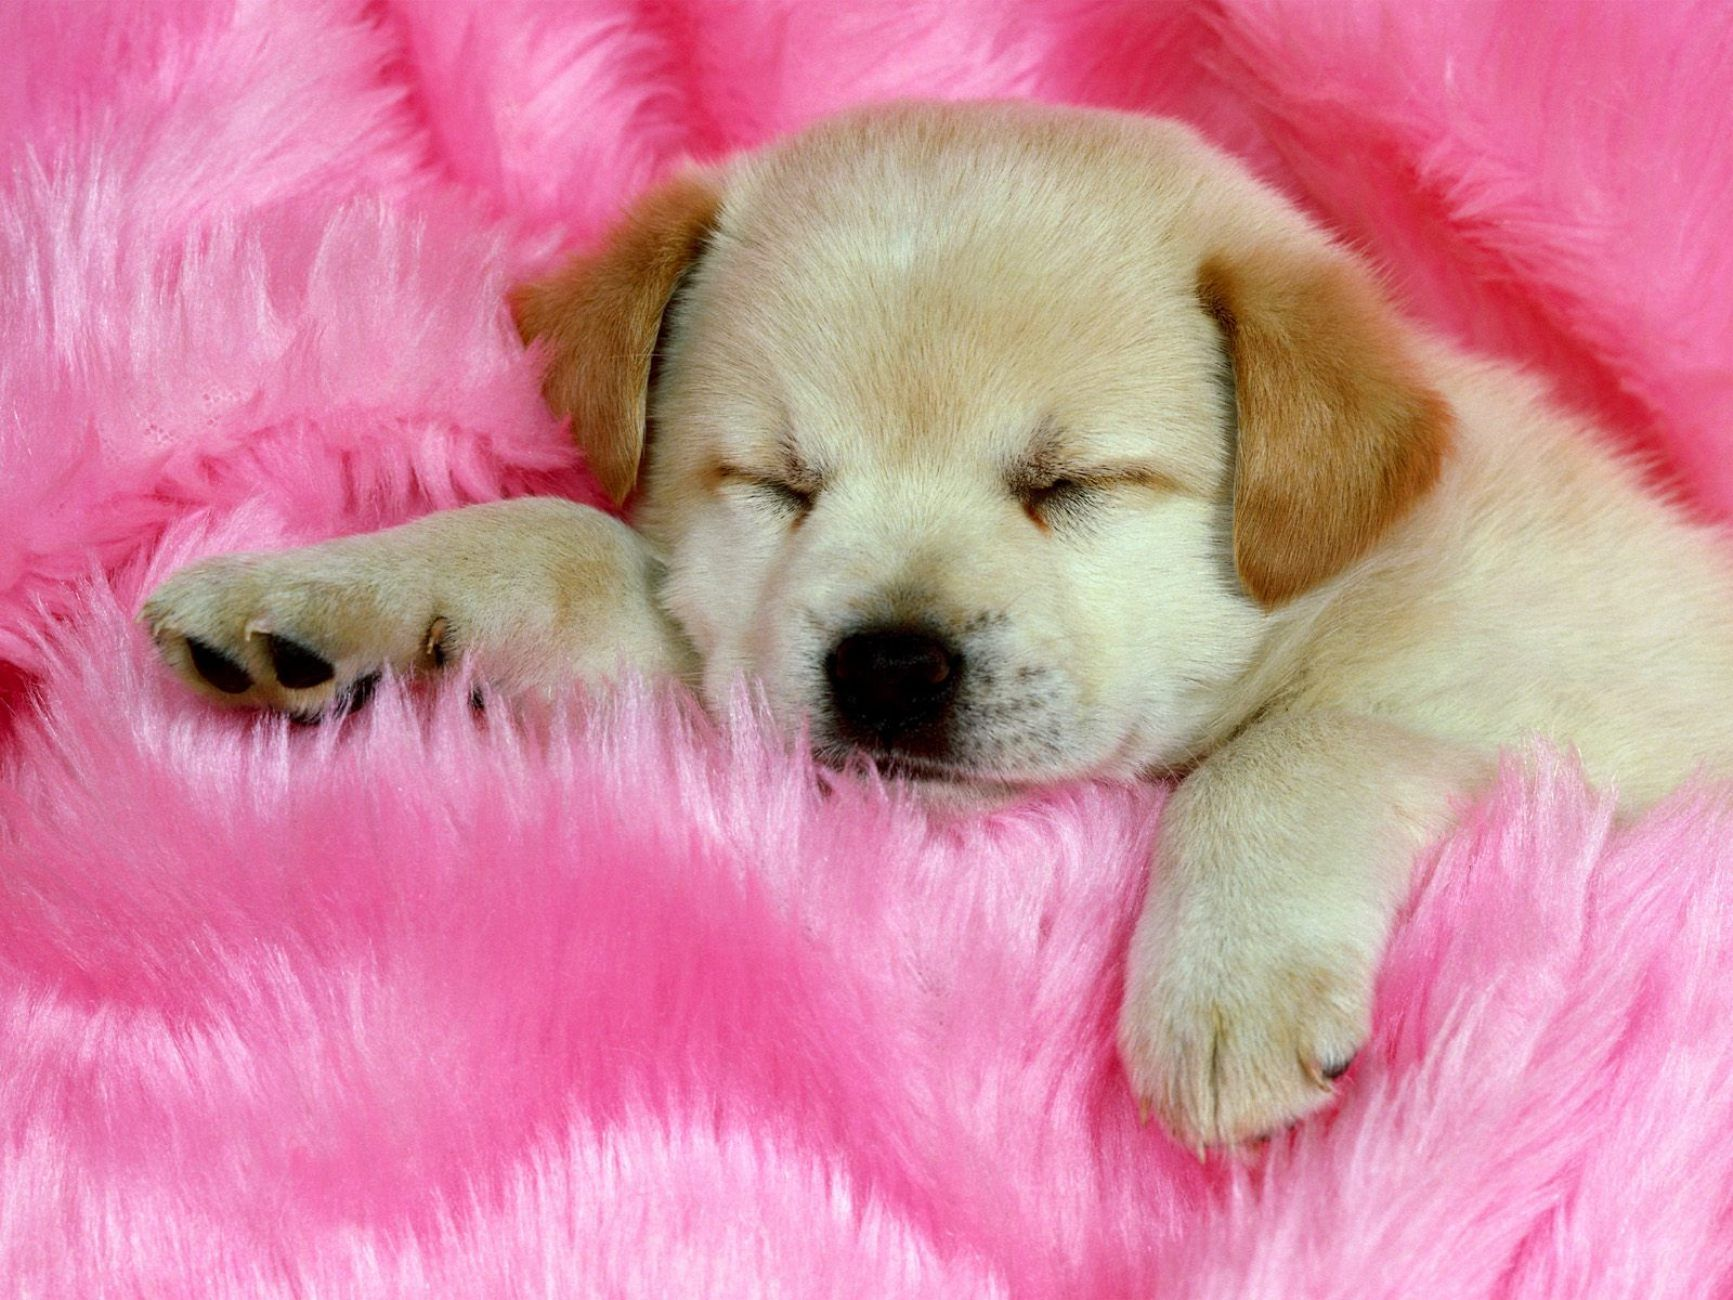 Puppie pictures online free online dogs wallpapers for desktop and